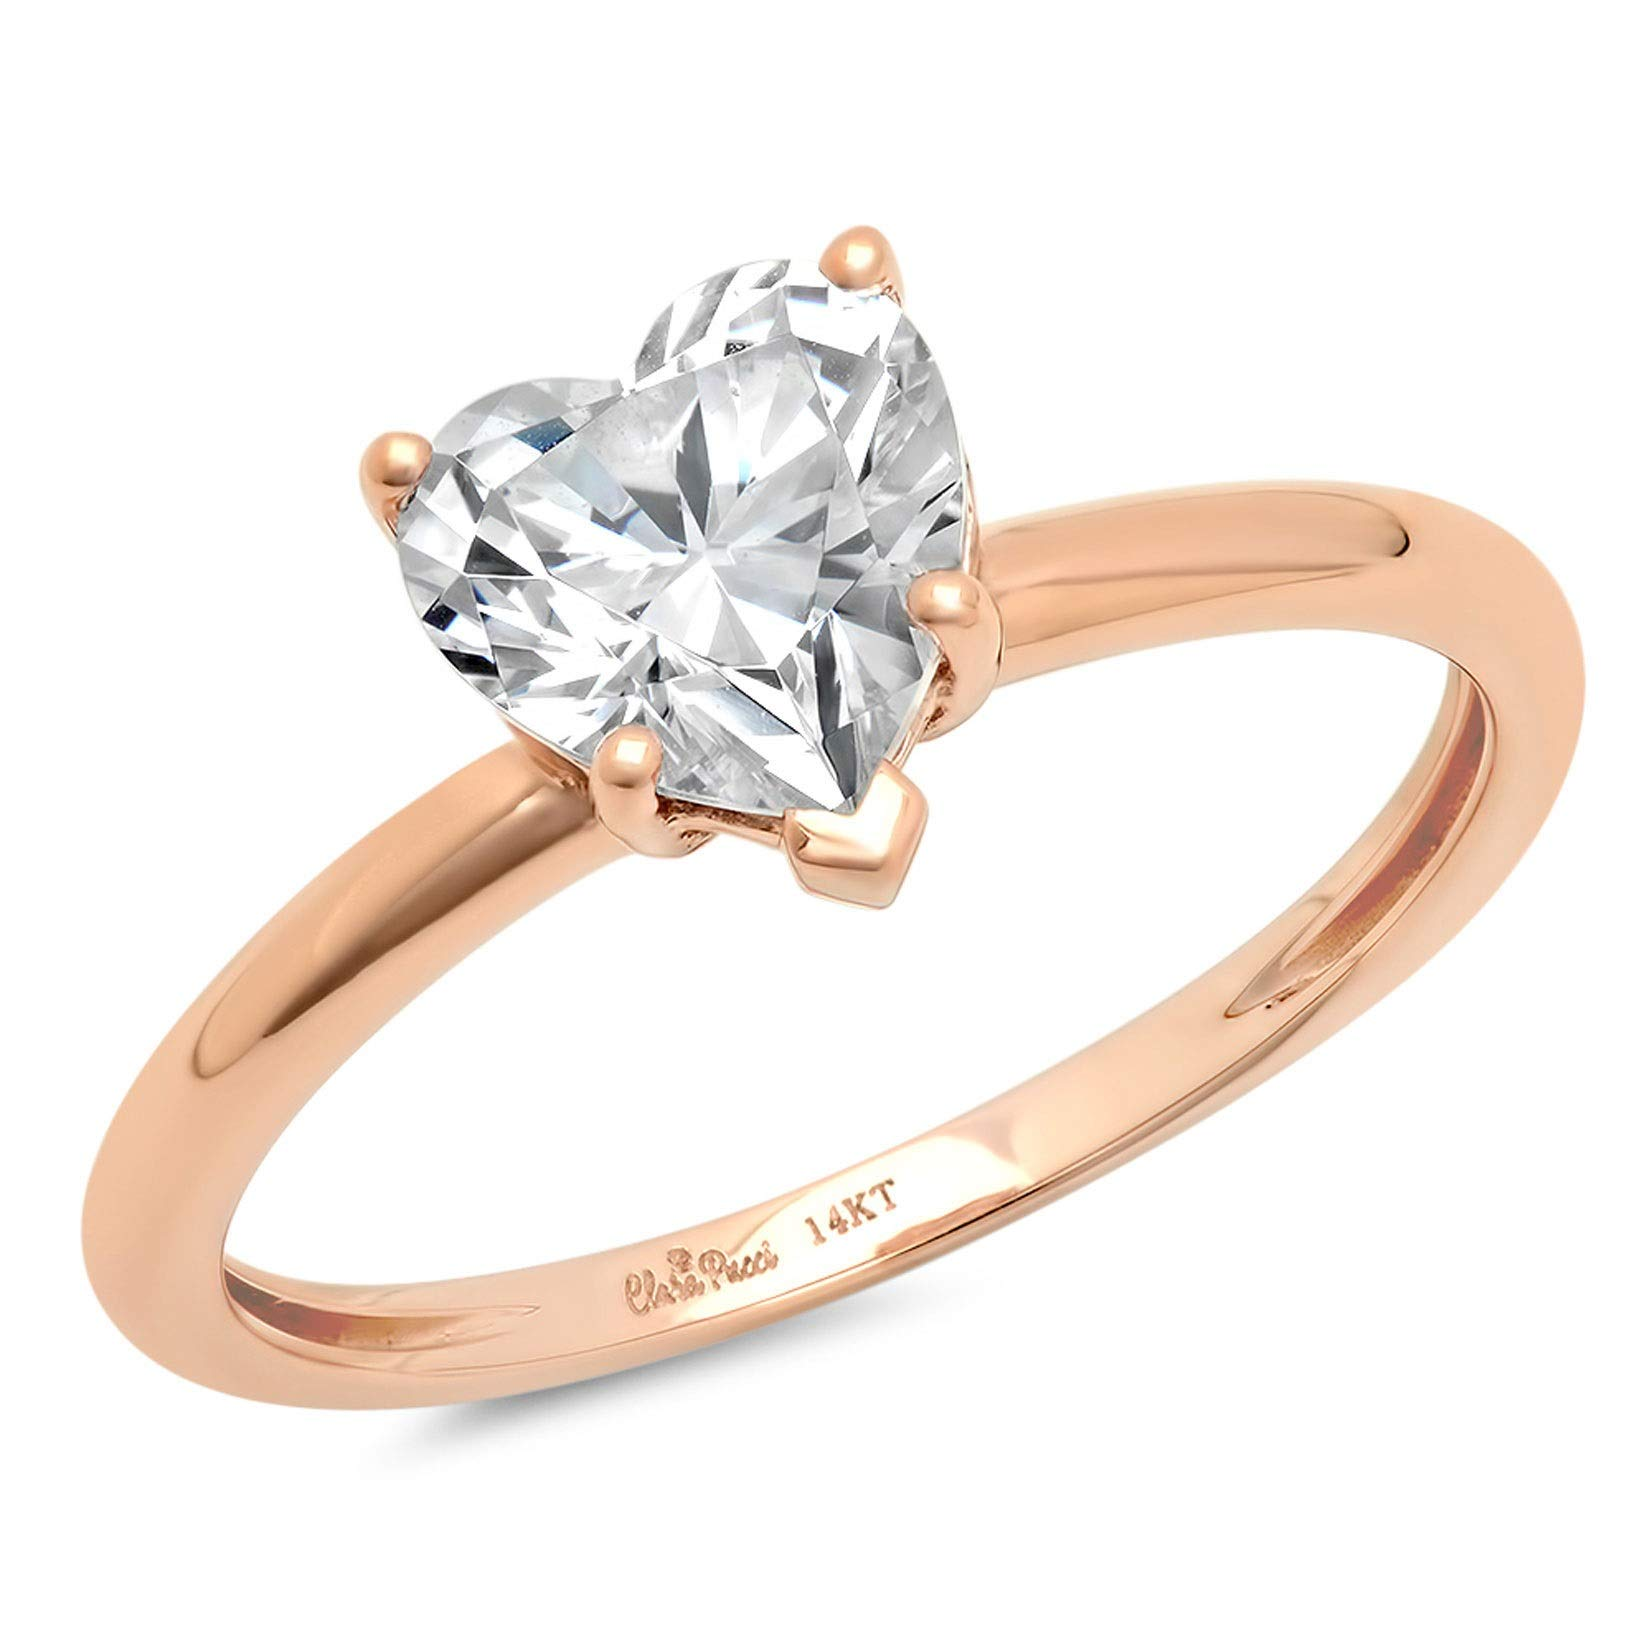 0.9ct Brilliant Heart Cut Solitaire Highest Quality Lab Created White Sapphire Ideal VVS1 D 5-Prong Engagement Wedding Bridal Promise Anniversary Ring Solid Real 14k Rose Gold for Women